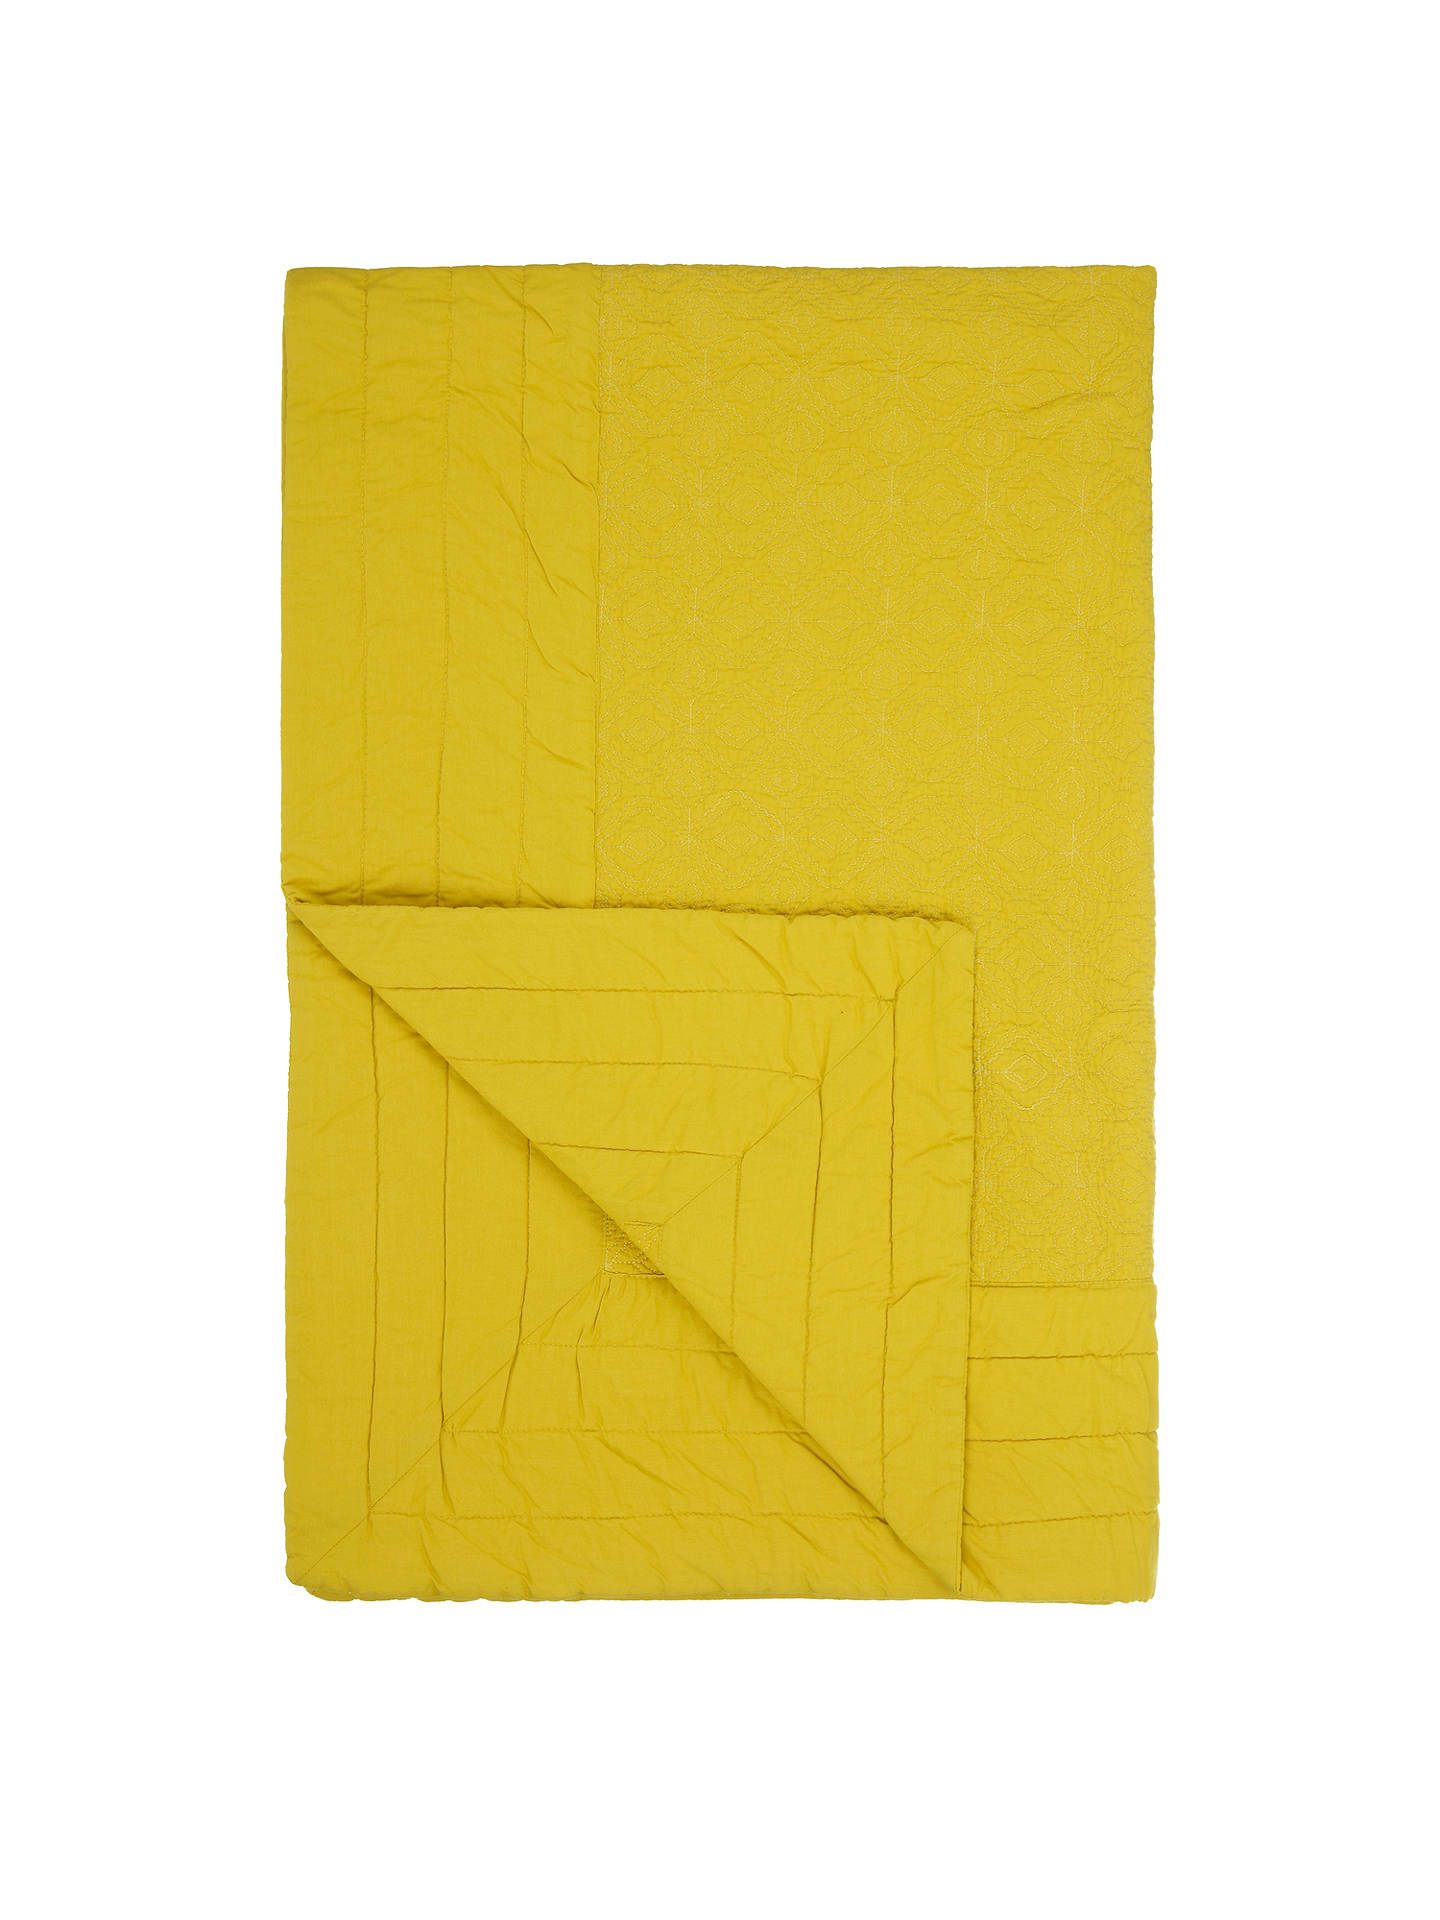 BuyJohn Lewis & Partners Isana Embroidered Bedspread, Saffron, L200 x W150cm Online at johnlewis.com